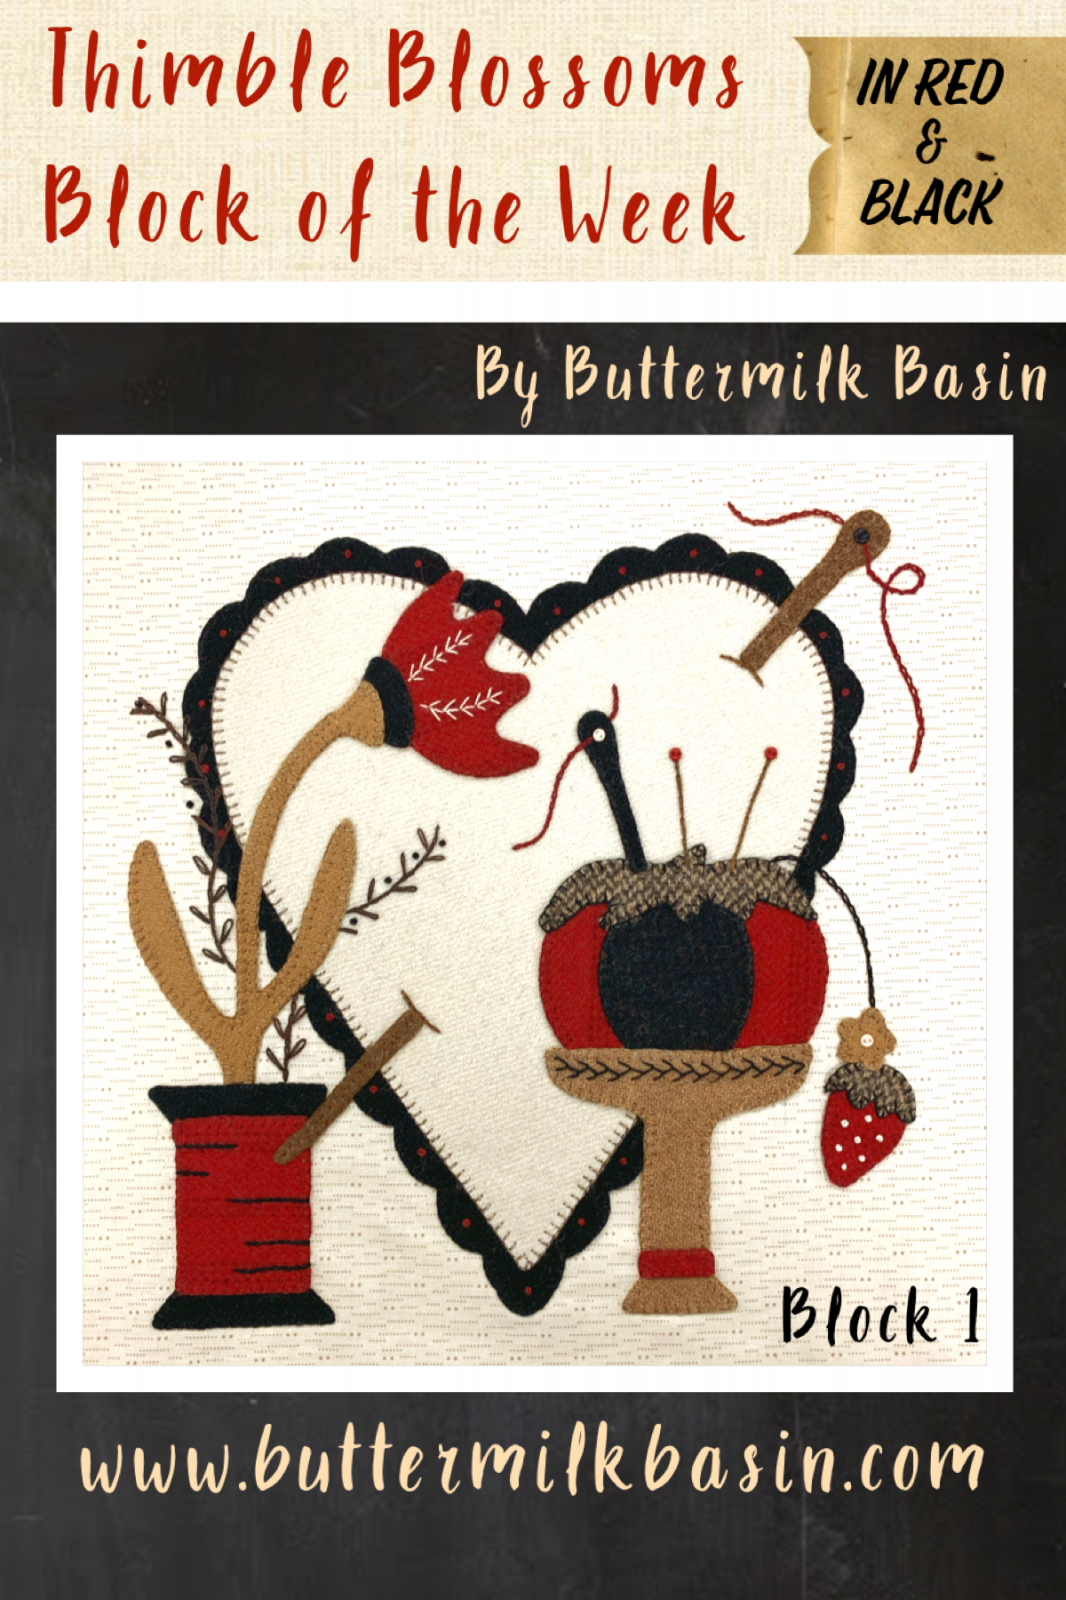 Red & Black Thimble Blossoms Block of the Week * Block #1 Kit & Pattern